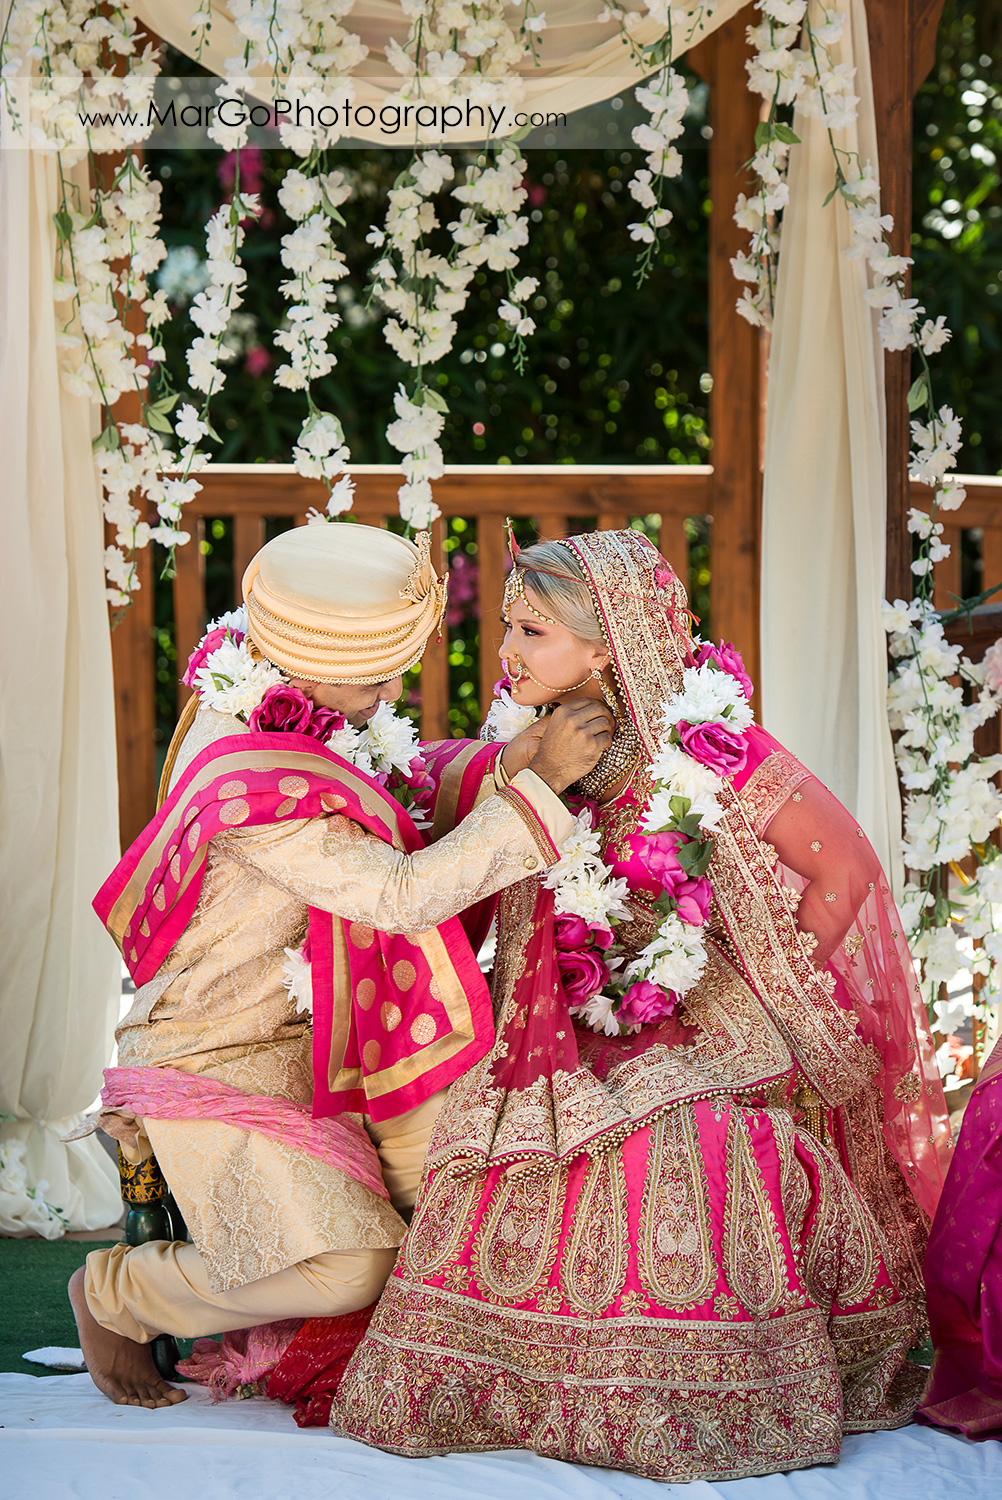 Indian groom adorns the bride with a necklace Mangalsutra under Mandap during wedding ceremony at Elliston Vineyards in Sunol